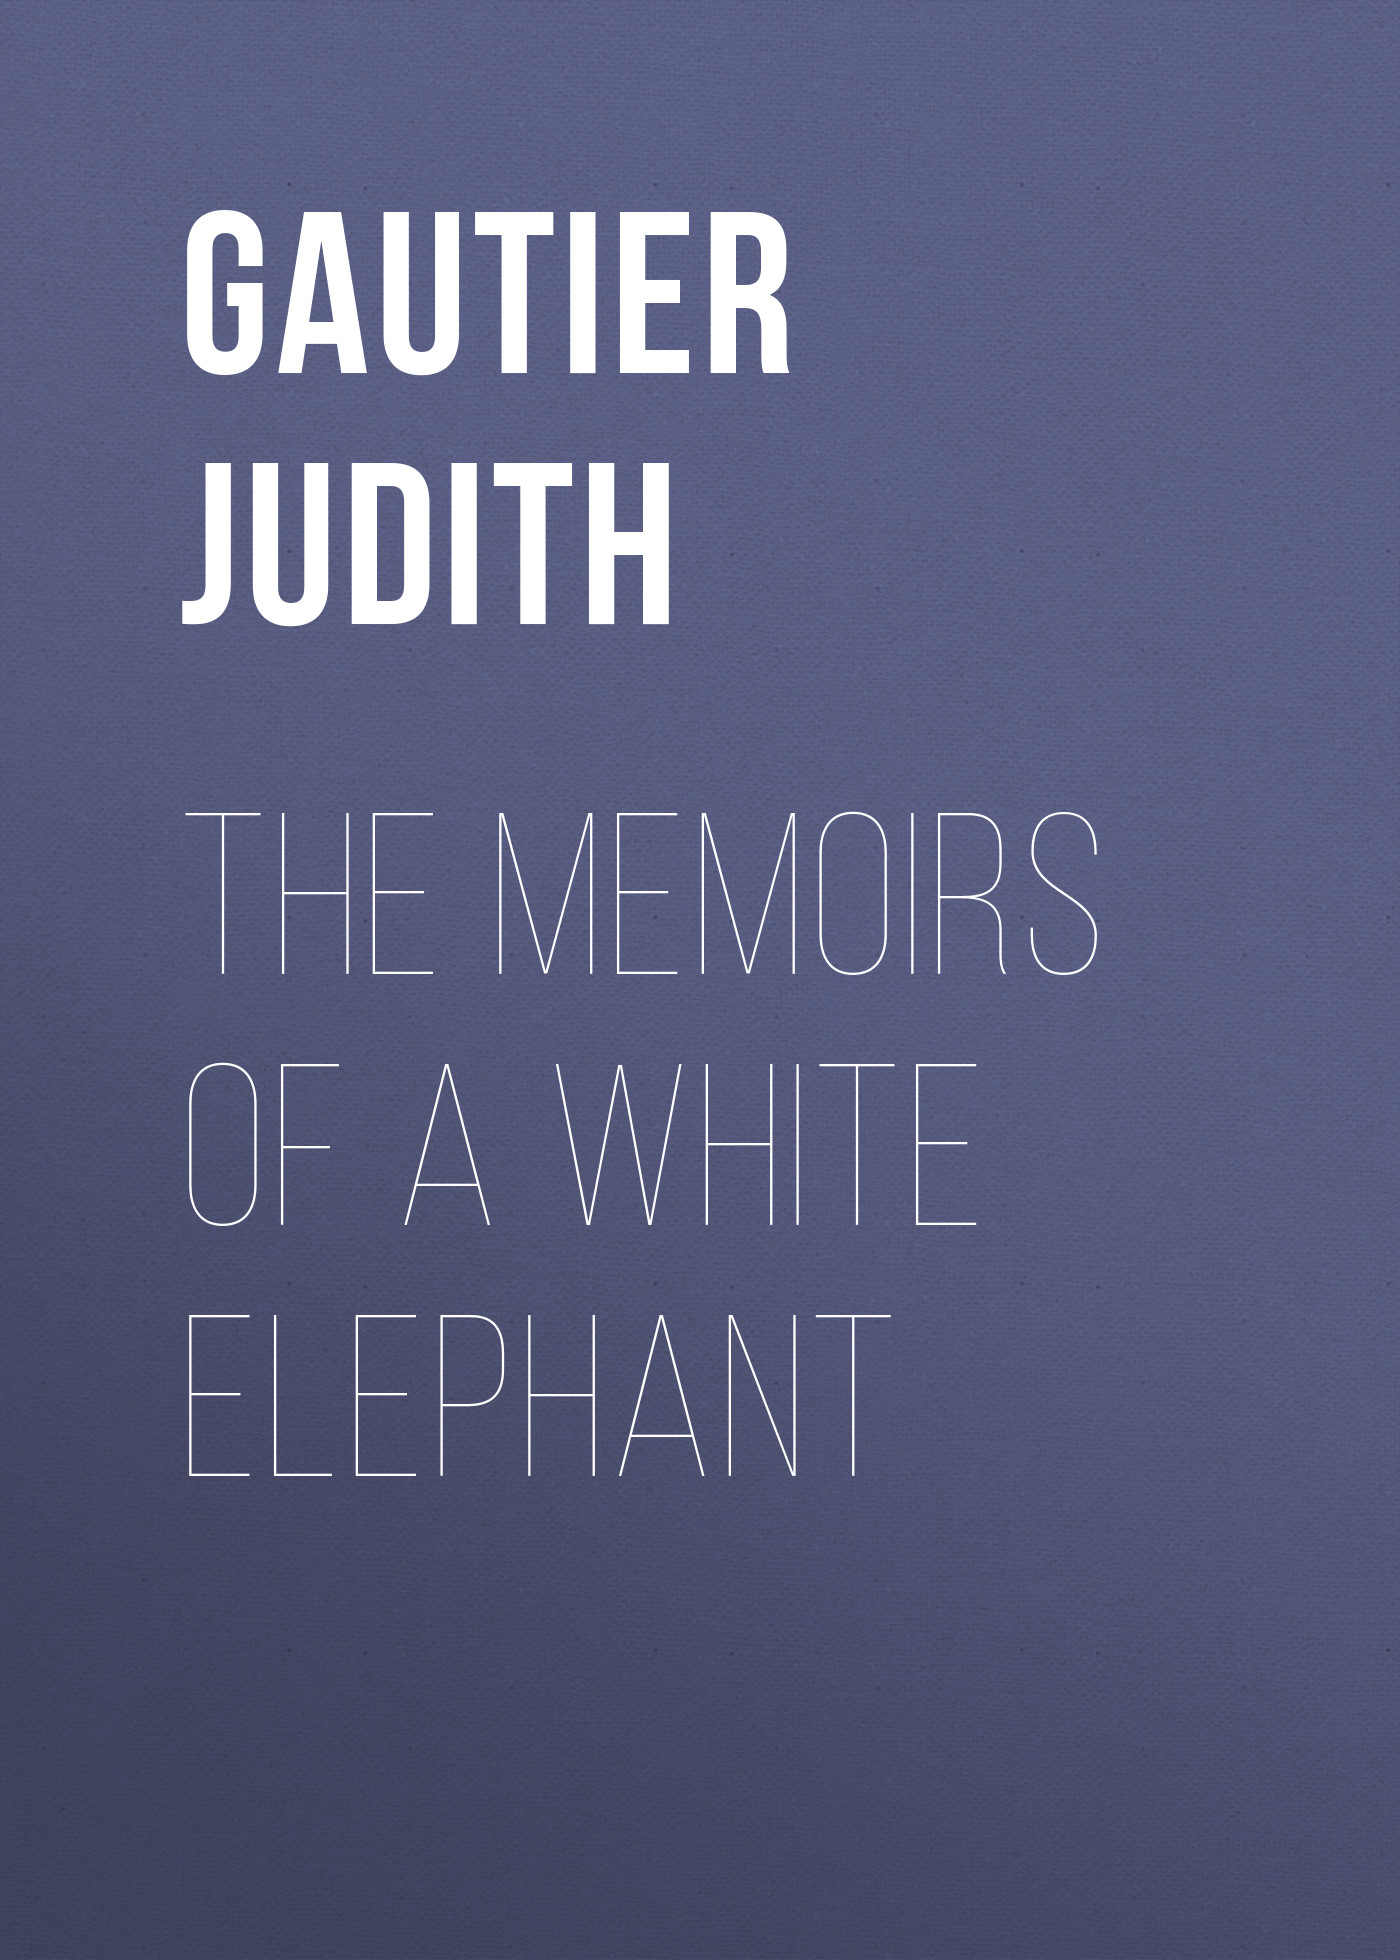 Gautier Judith The Memoirs of a White Elephant walter de la mare memoirs of a midget